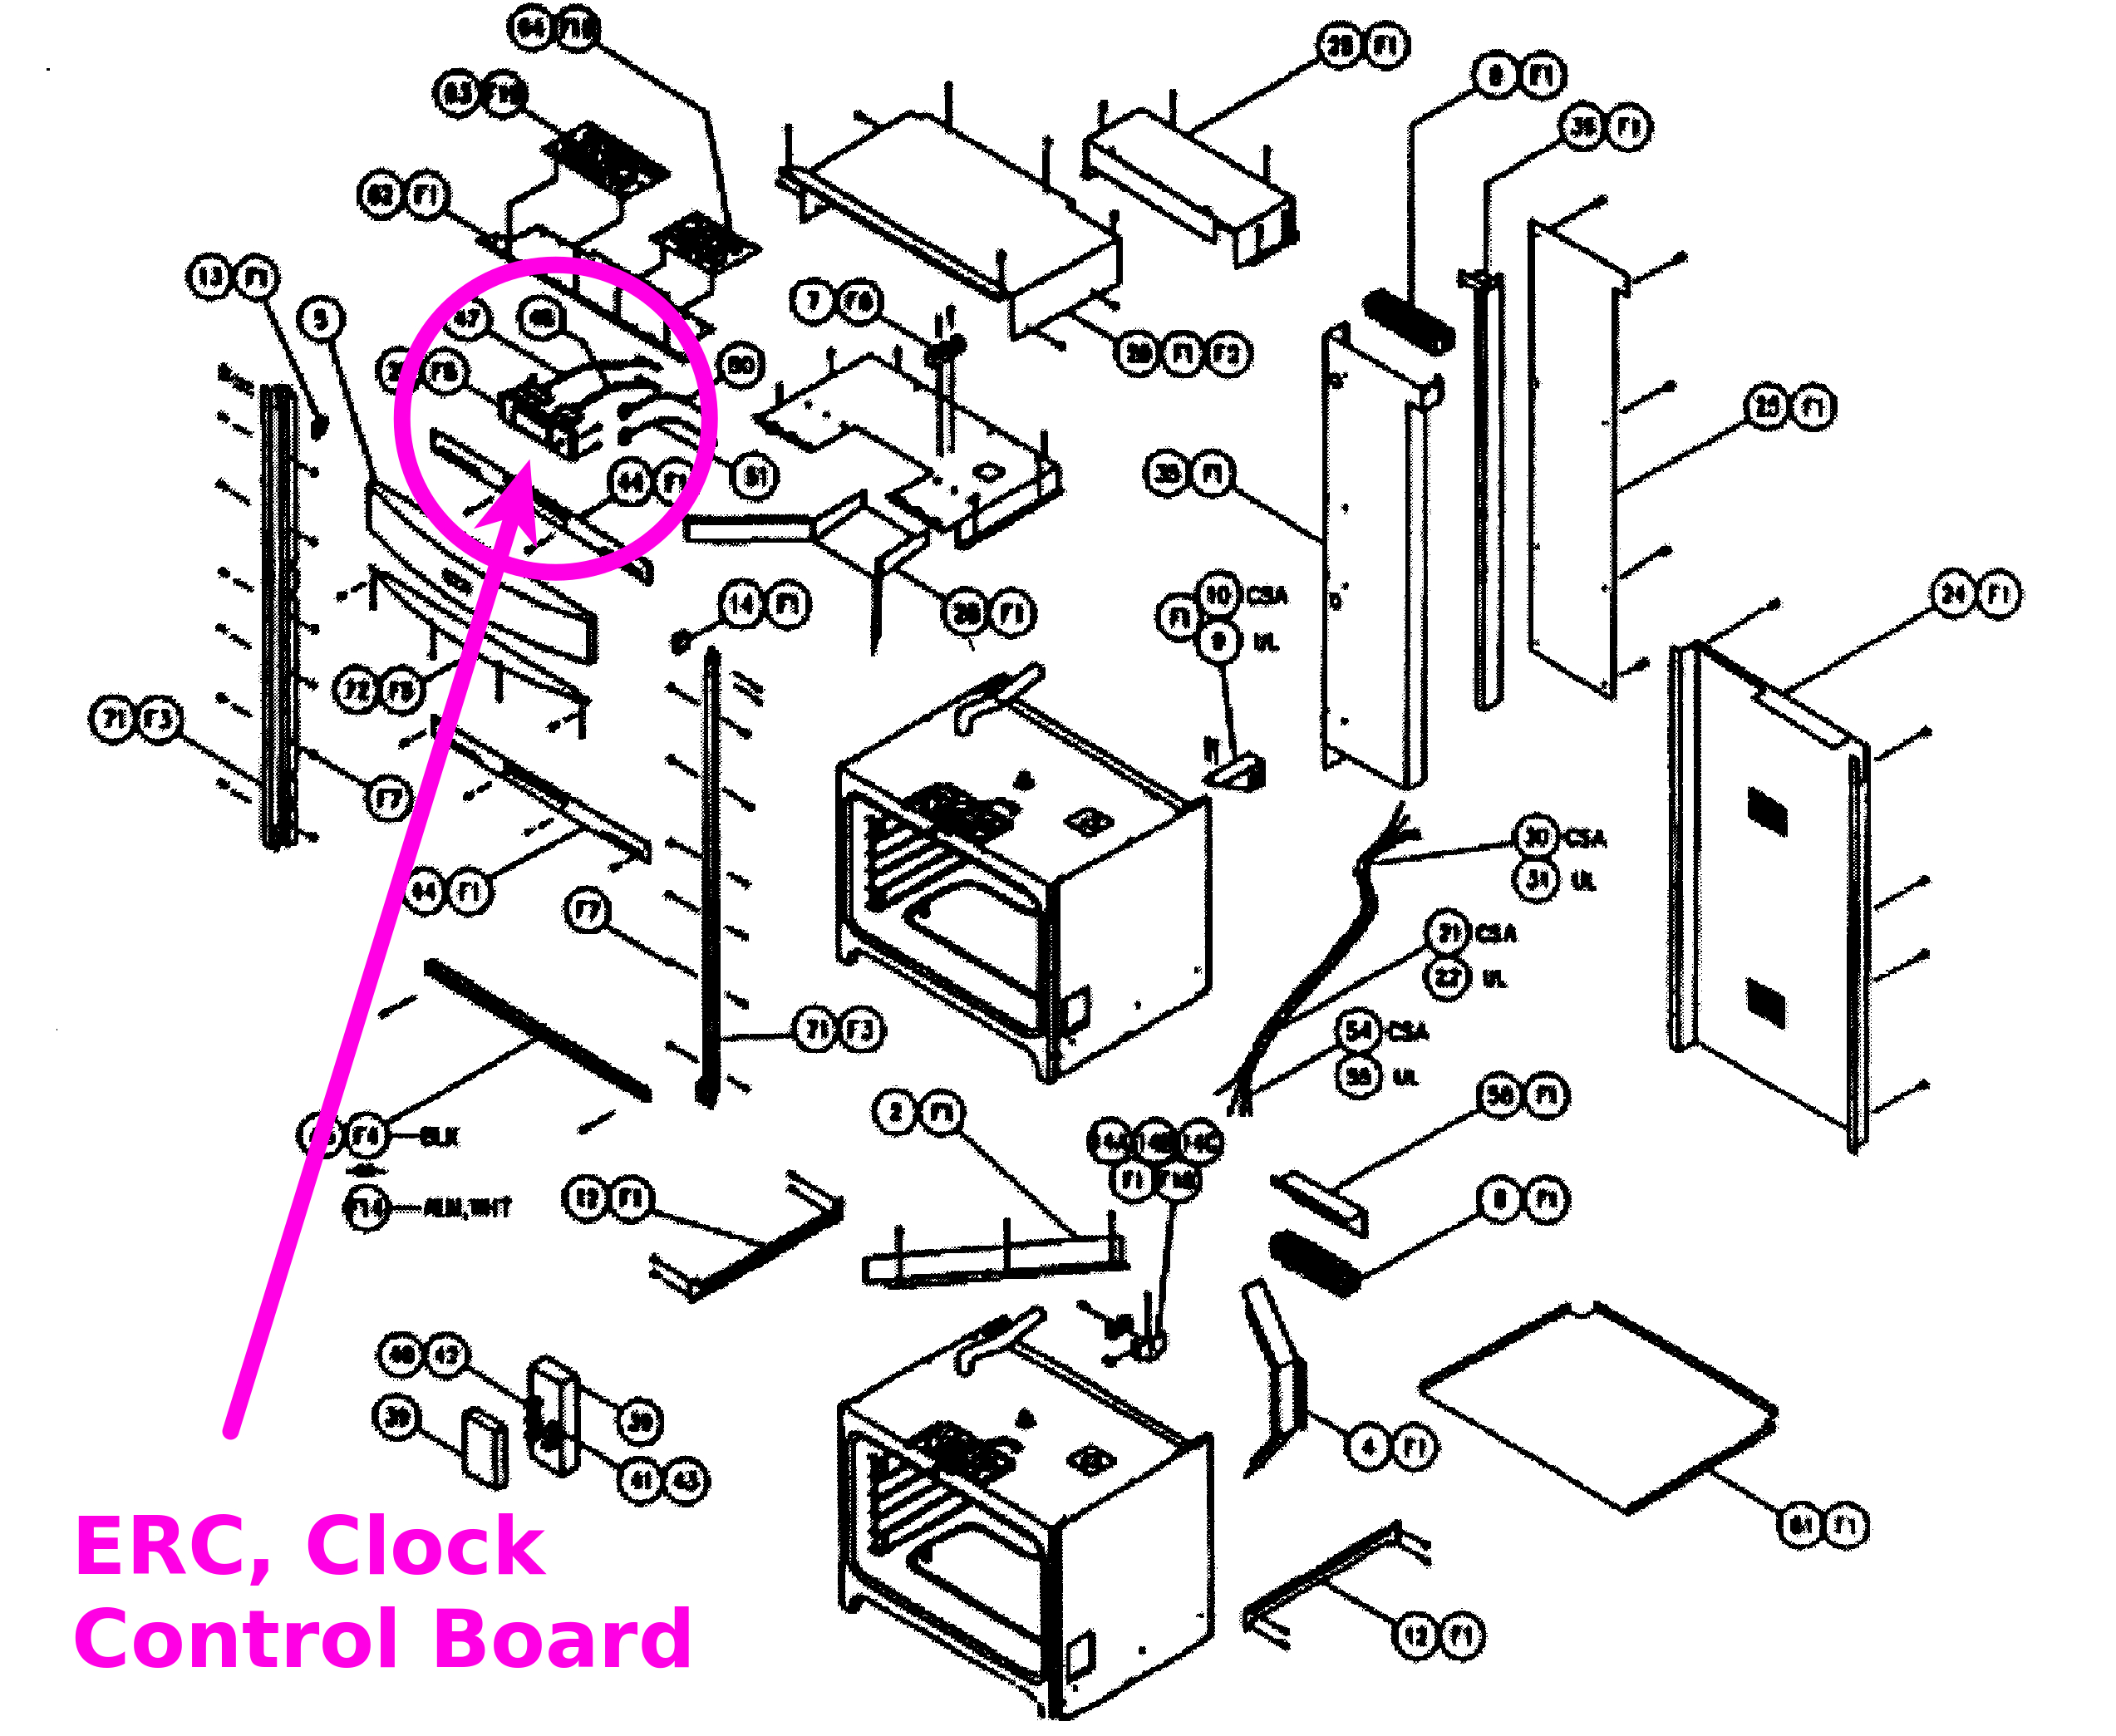 dacor double wall oven wiring schematic for    dacor    control board repair erd  ersd  cps  cpd  pgr     dacor    control board repair erd  ersd  cps  cpd  pgr